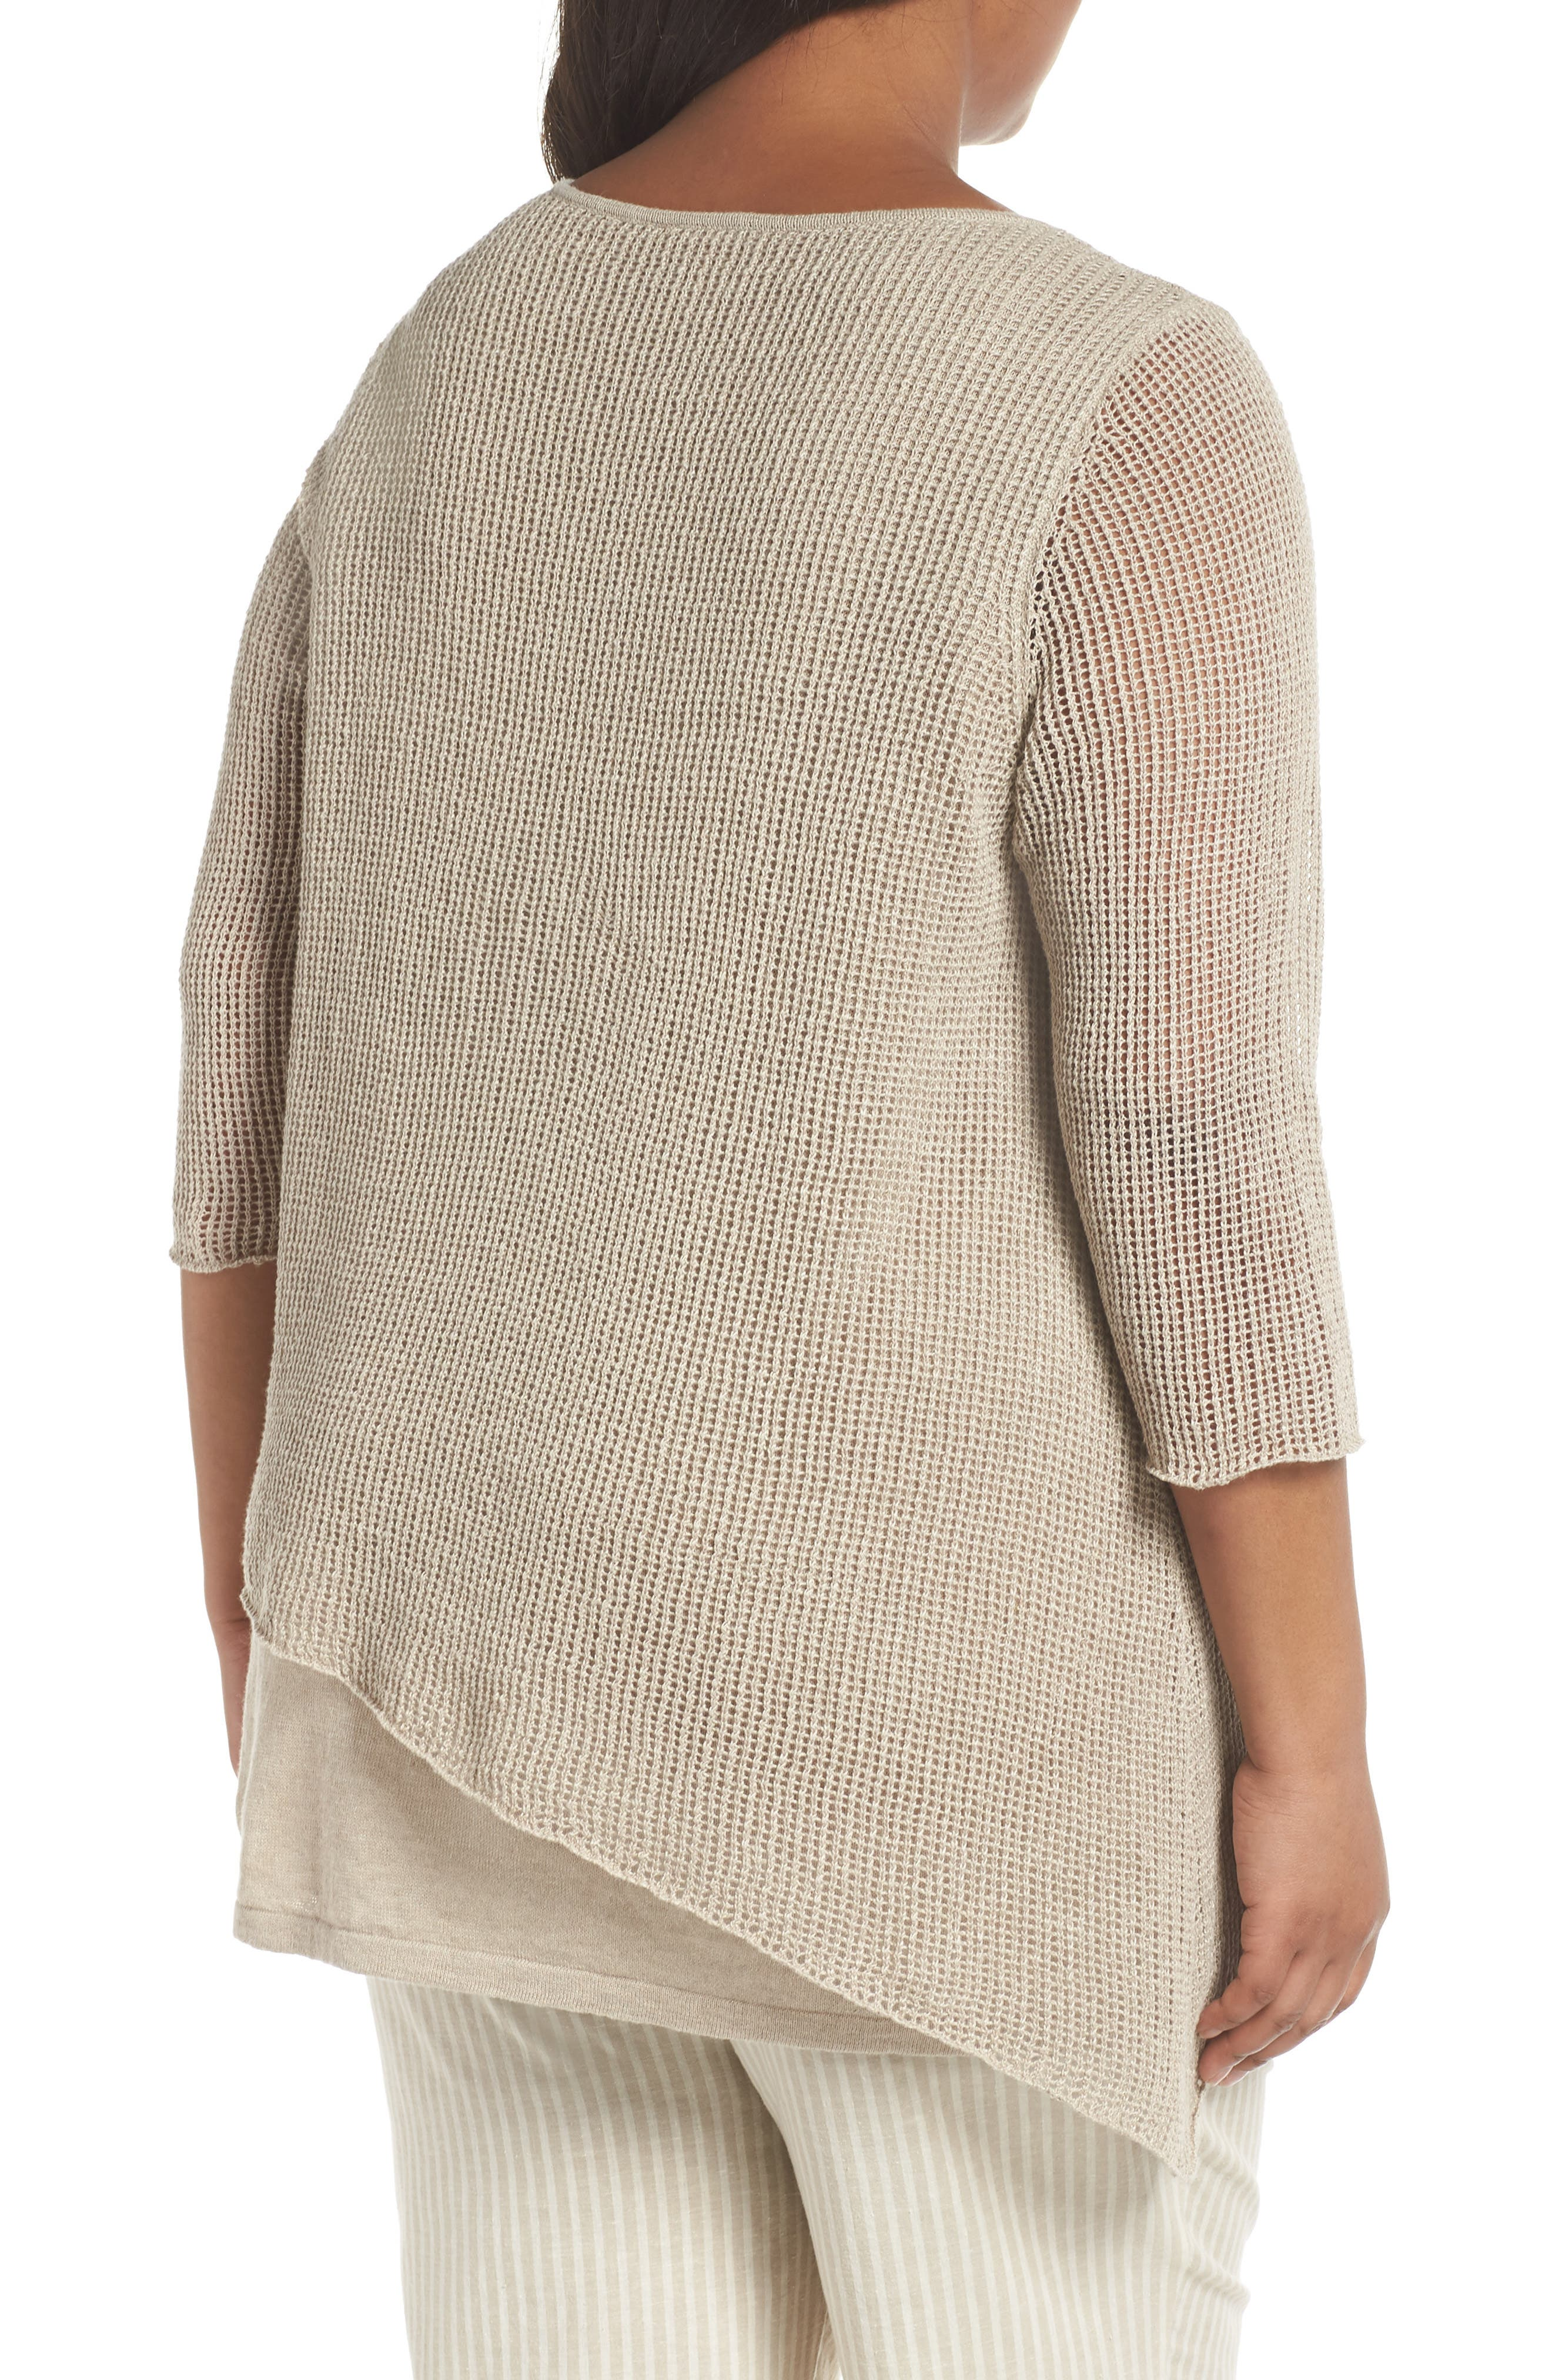 Layered Organic Linen Tunic Sweater,                             Alternate thumbnail 2, color,                             251